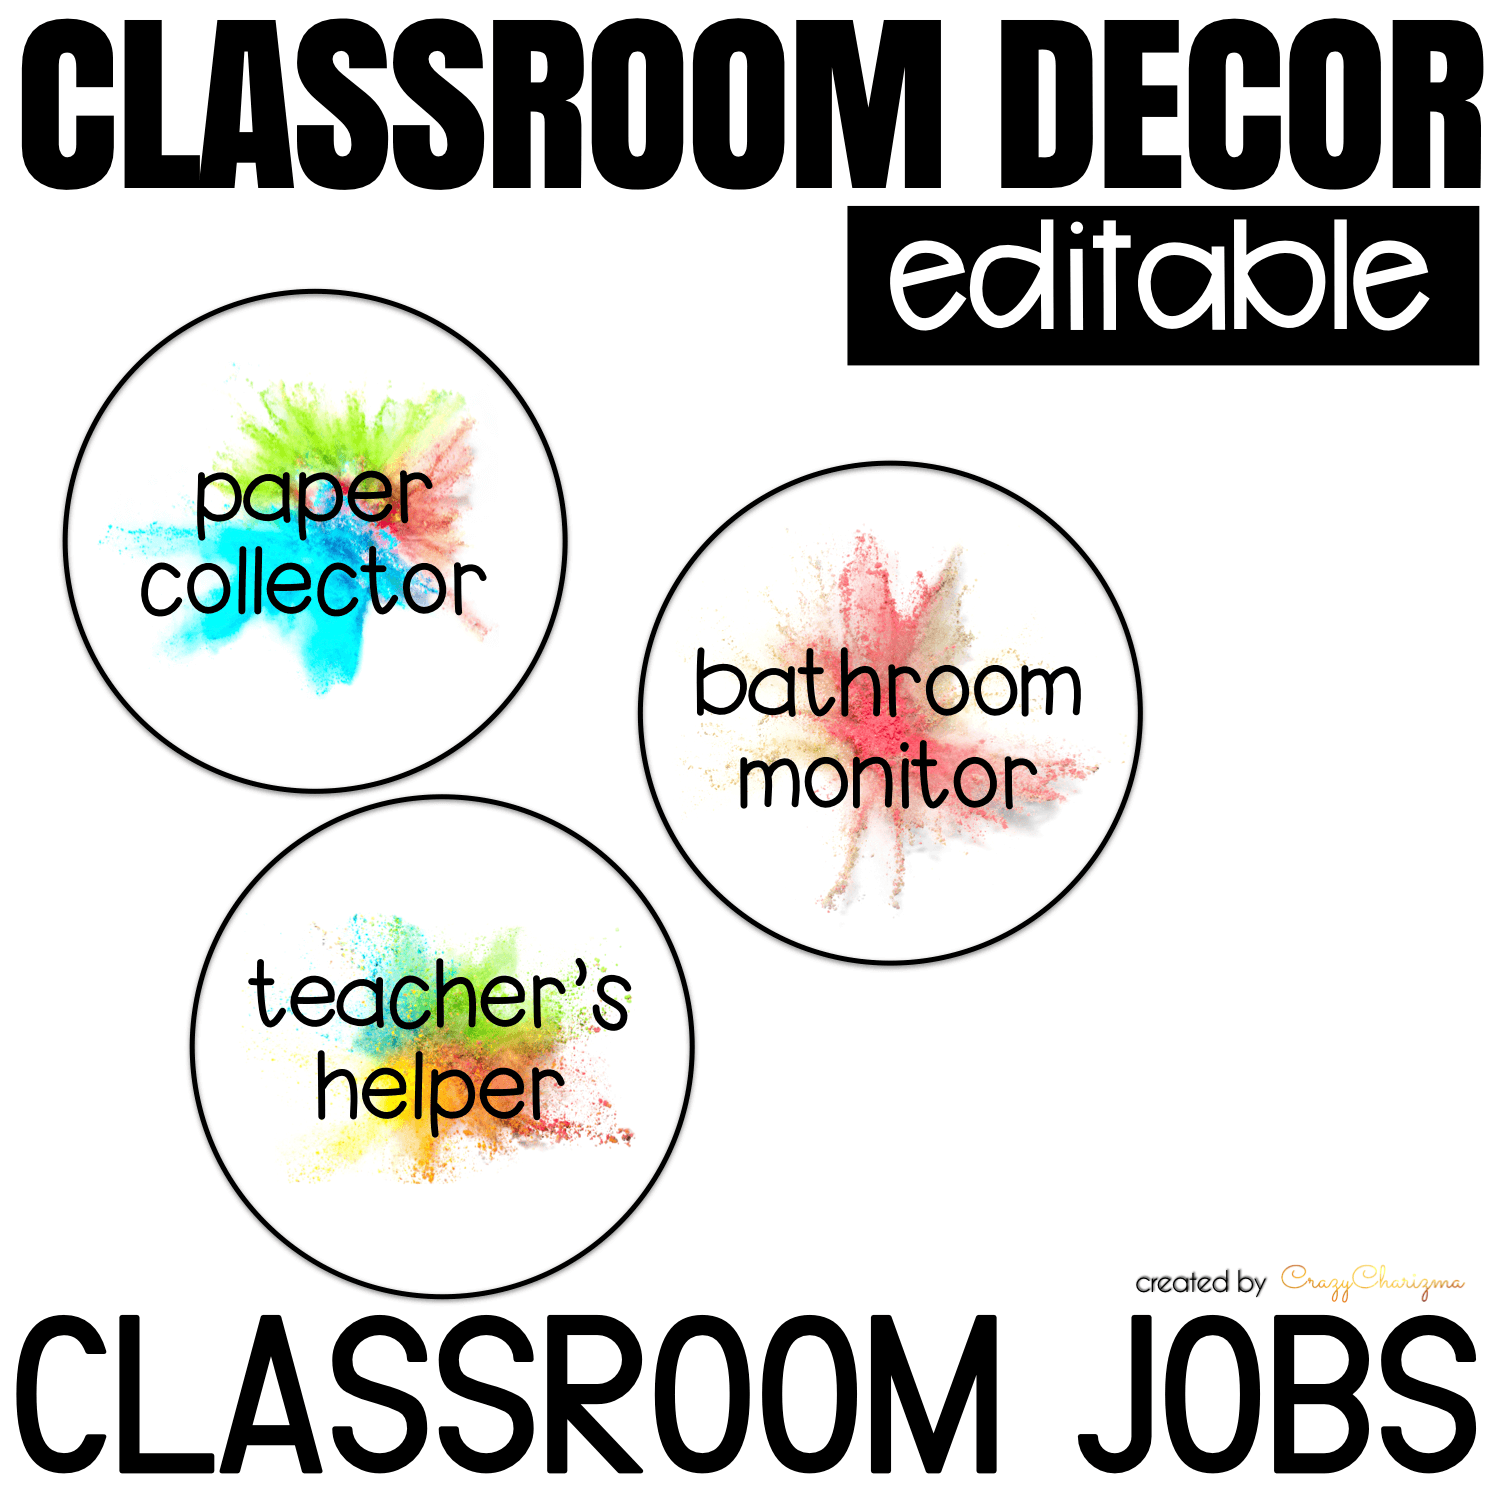 Looking for bright and clear EDITABLE classroom jobs labels? Spice your classroom with this visually appealing SPLASH classroom decor!